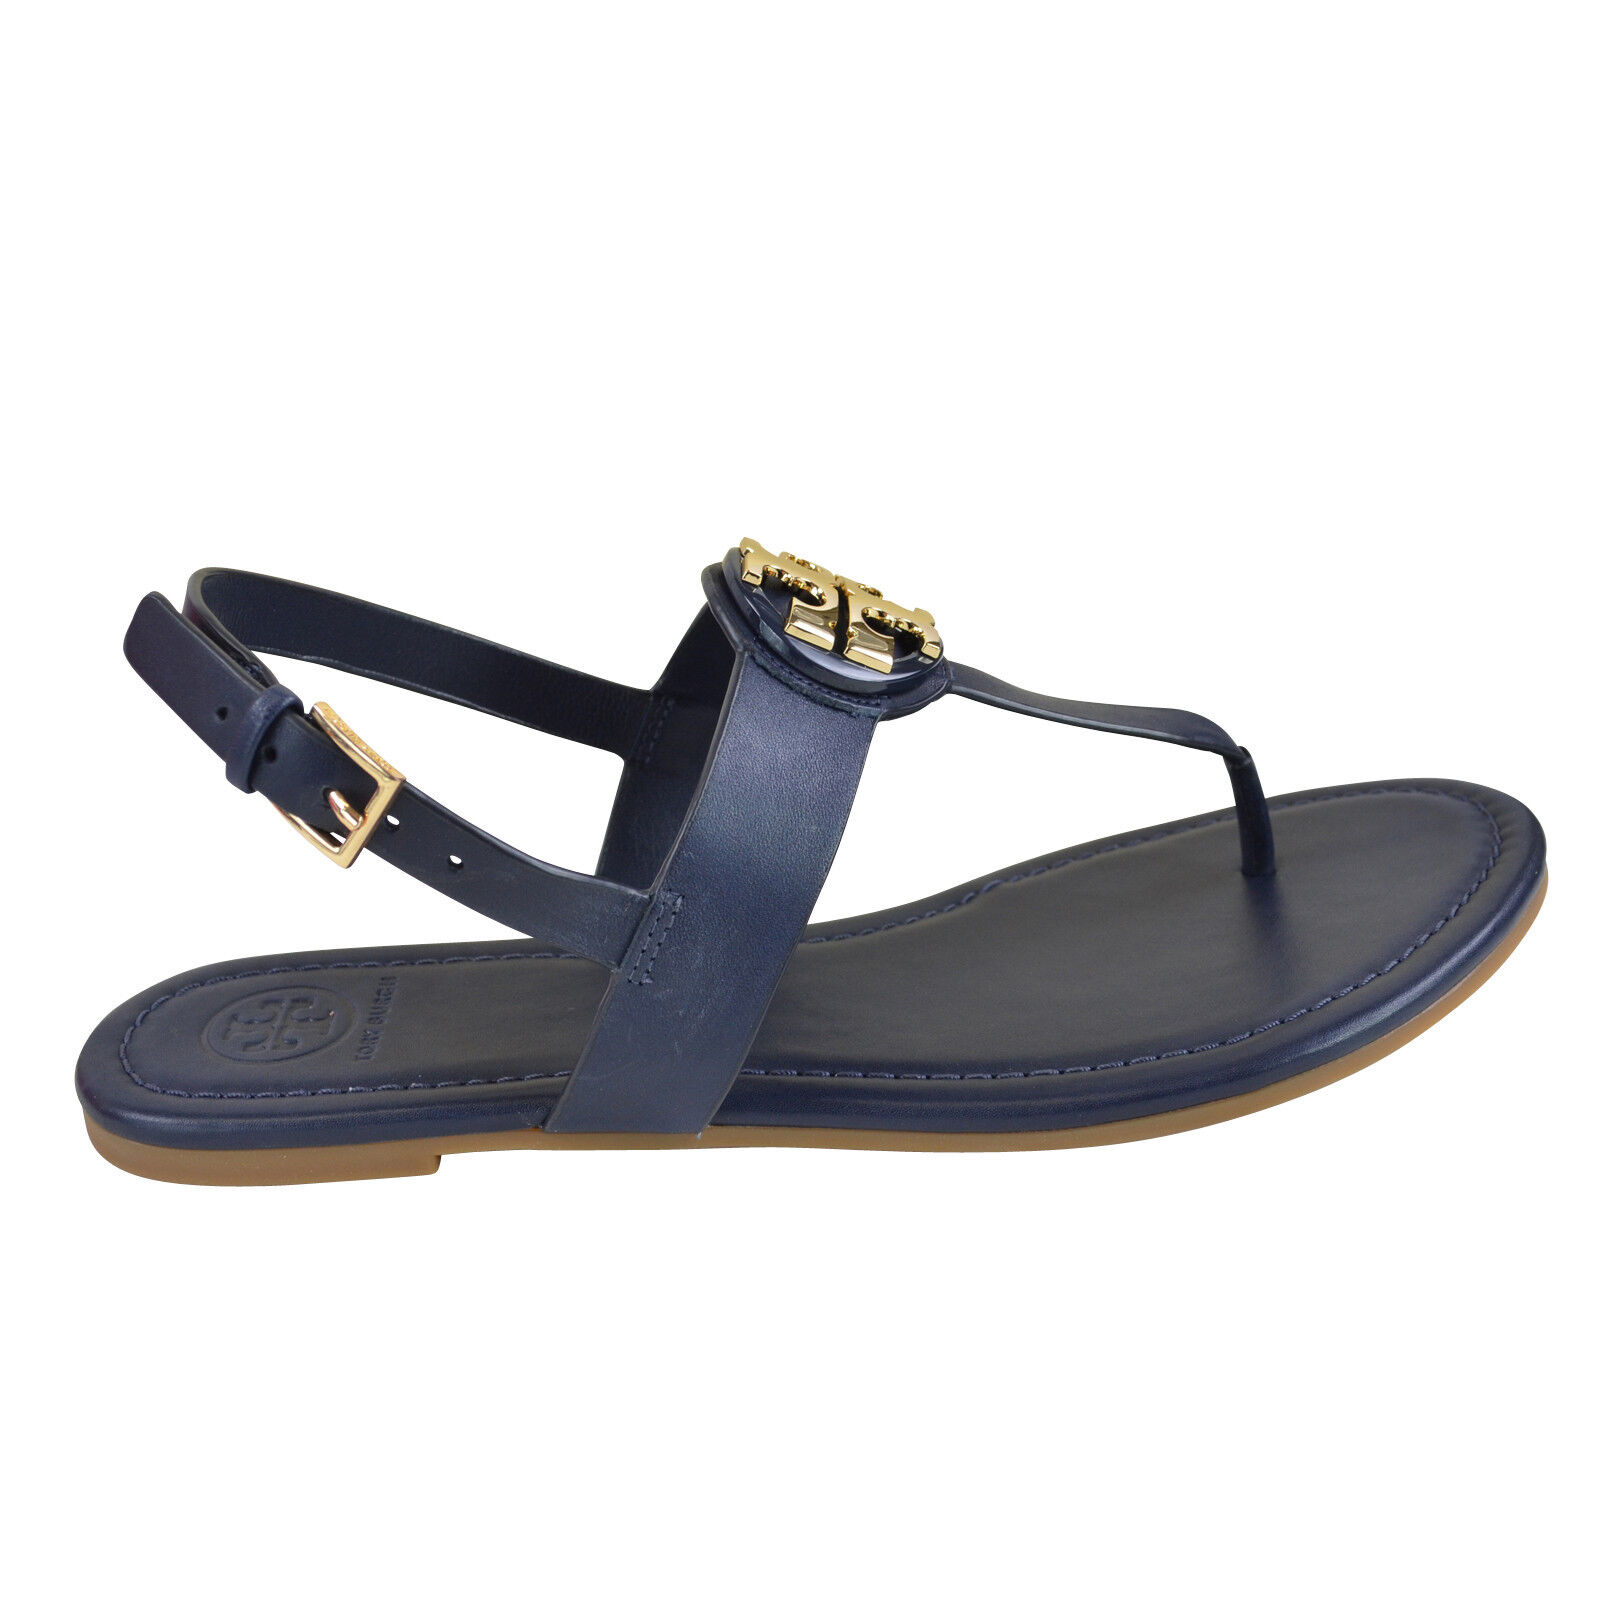 f9a6afbb4ec118 A gleaming logo medallion takes center stage on a beautifully smooth thong  sandal fitted with a slim slingback strap. - Leather upper and  lining rubber sole